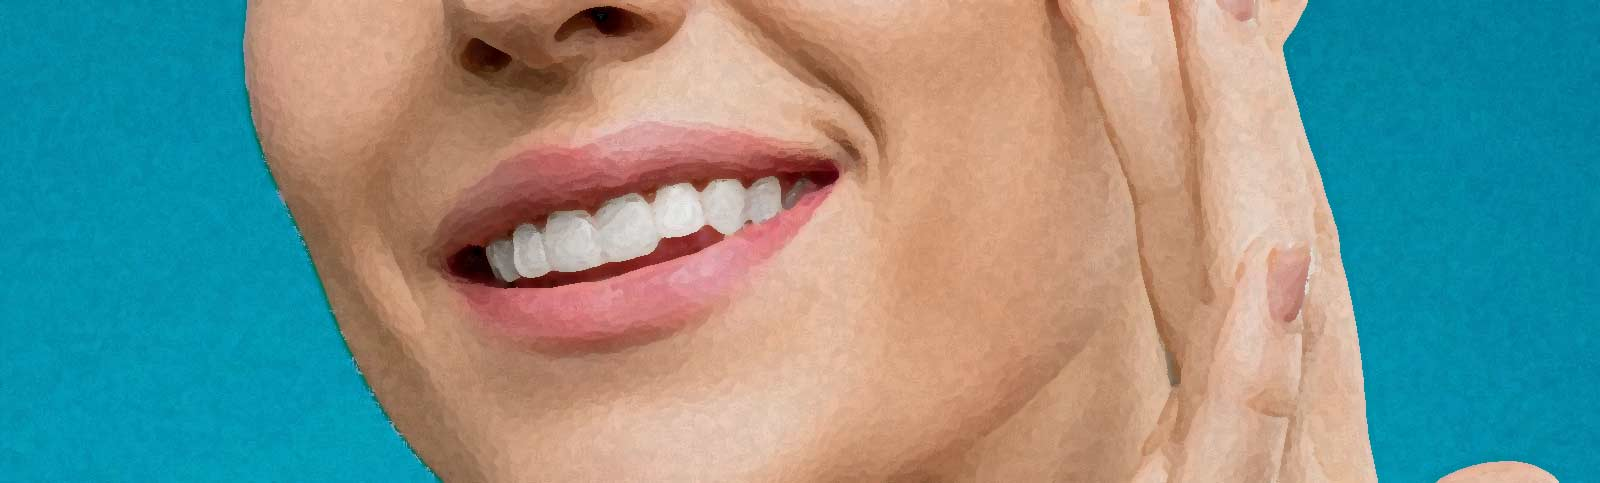 A Look at the Rise in Popularity of Teeth Whitening